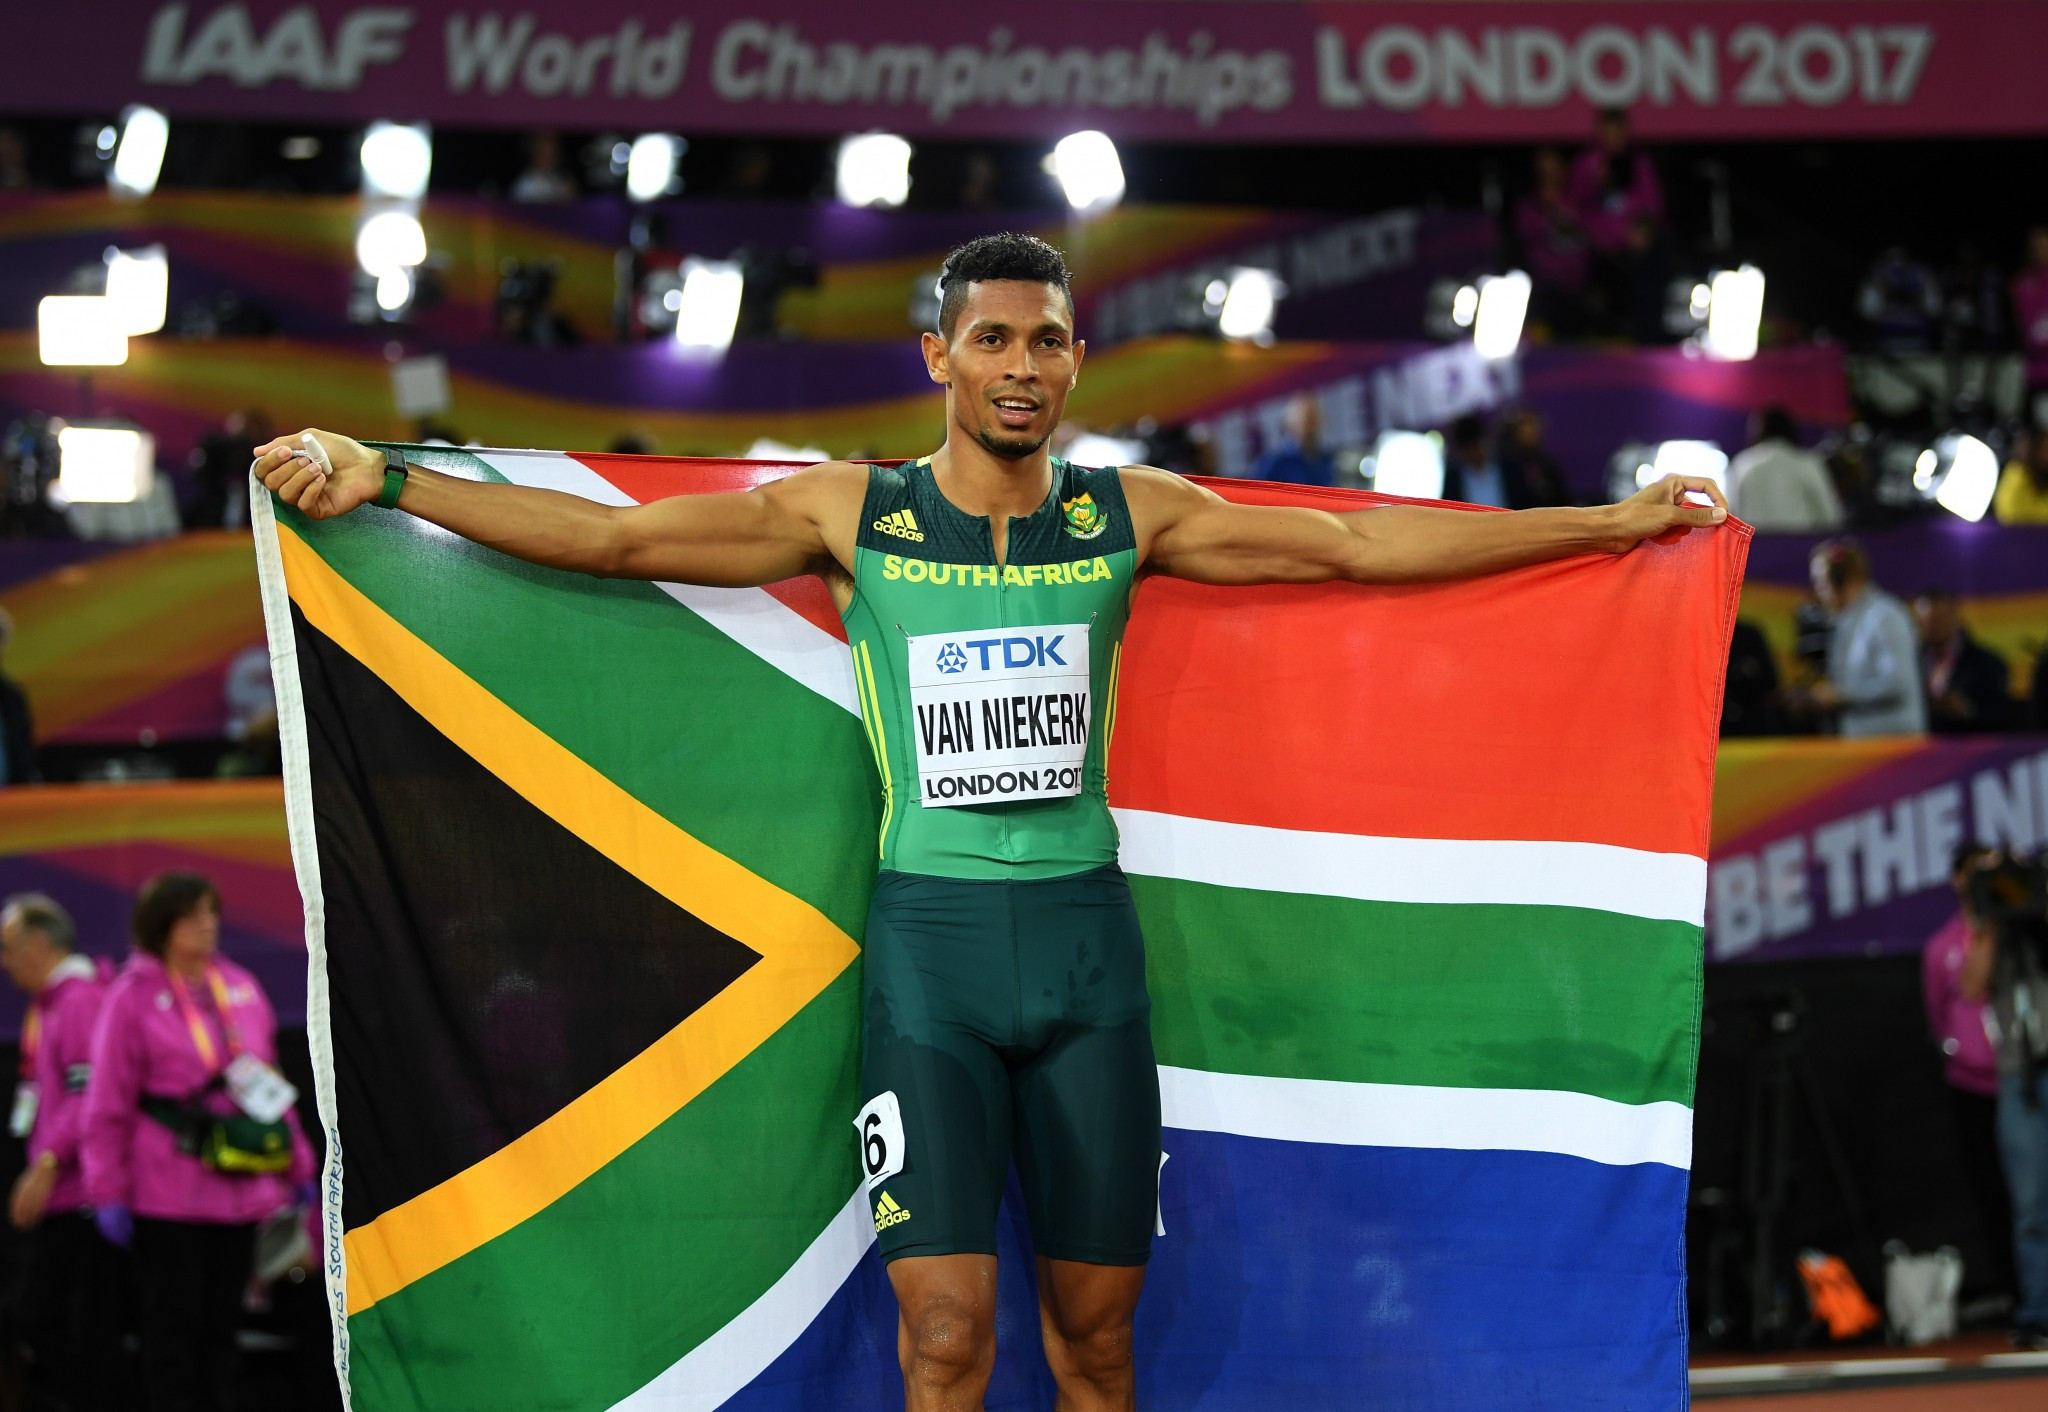 Van Niekerk strolls to 400m victory on fifth day of competition at IAAF World Championships